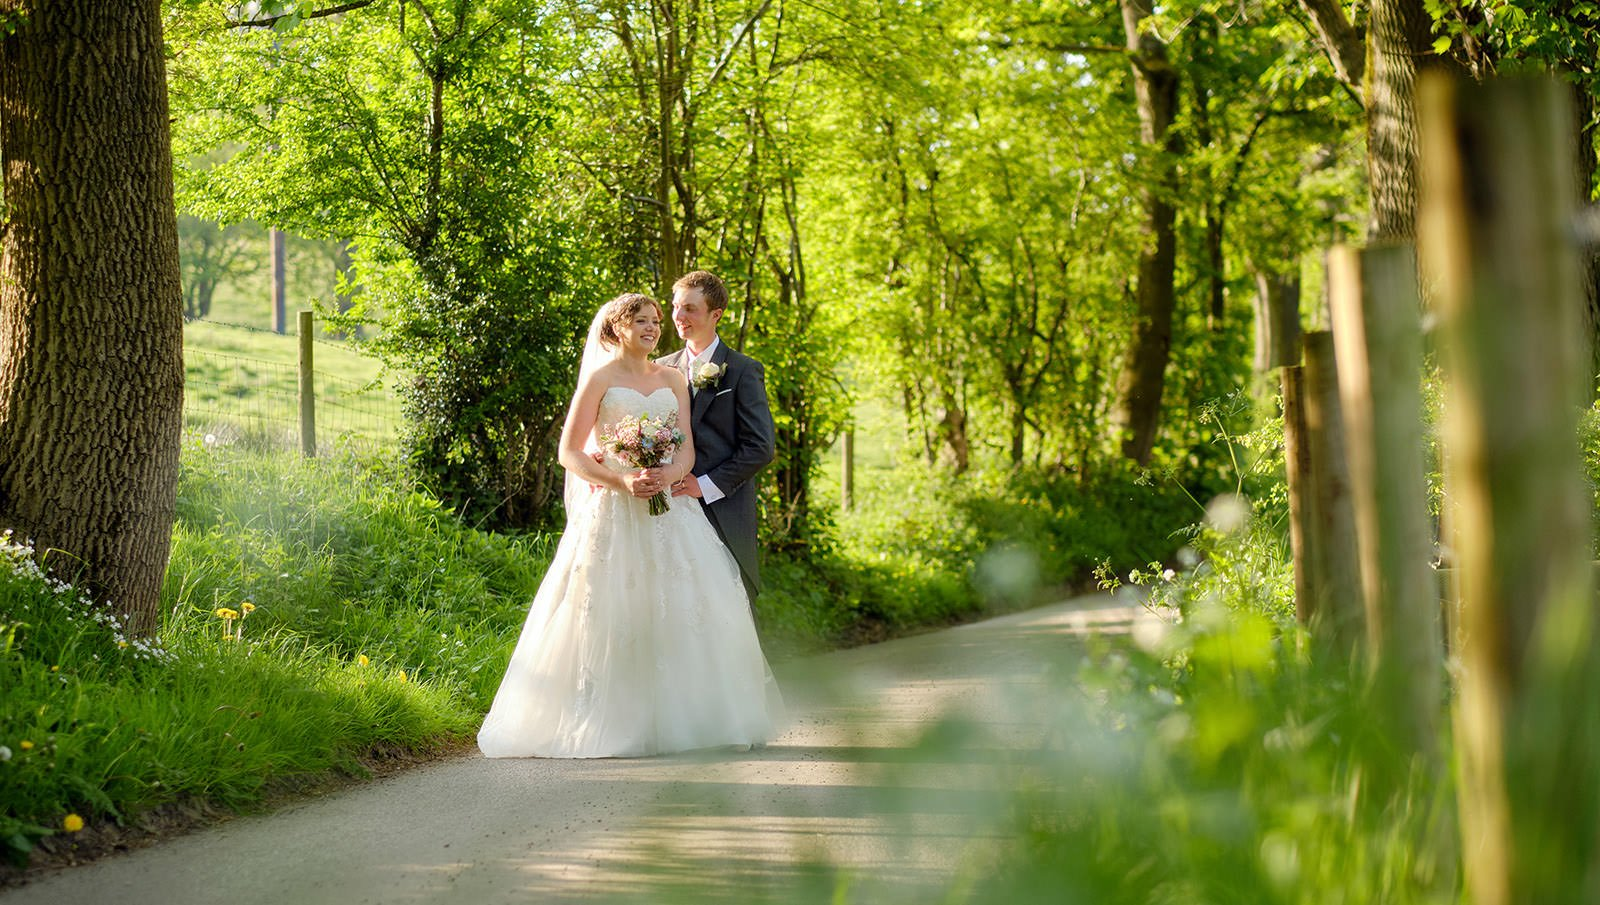 After their wedding at Taxal Church, a bride and groom admire each other in the evening sunlight on the lane at Losehill House. A perfect location in the Peak District for their Sheffield wedding photographer.